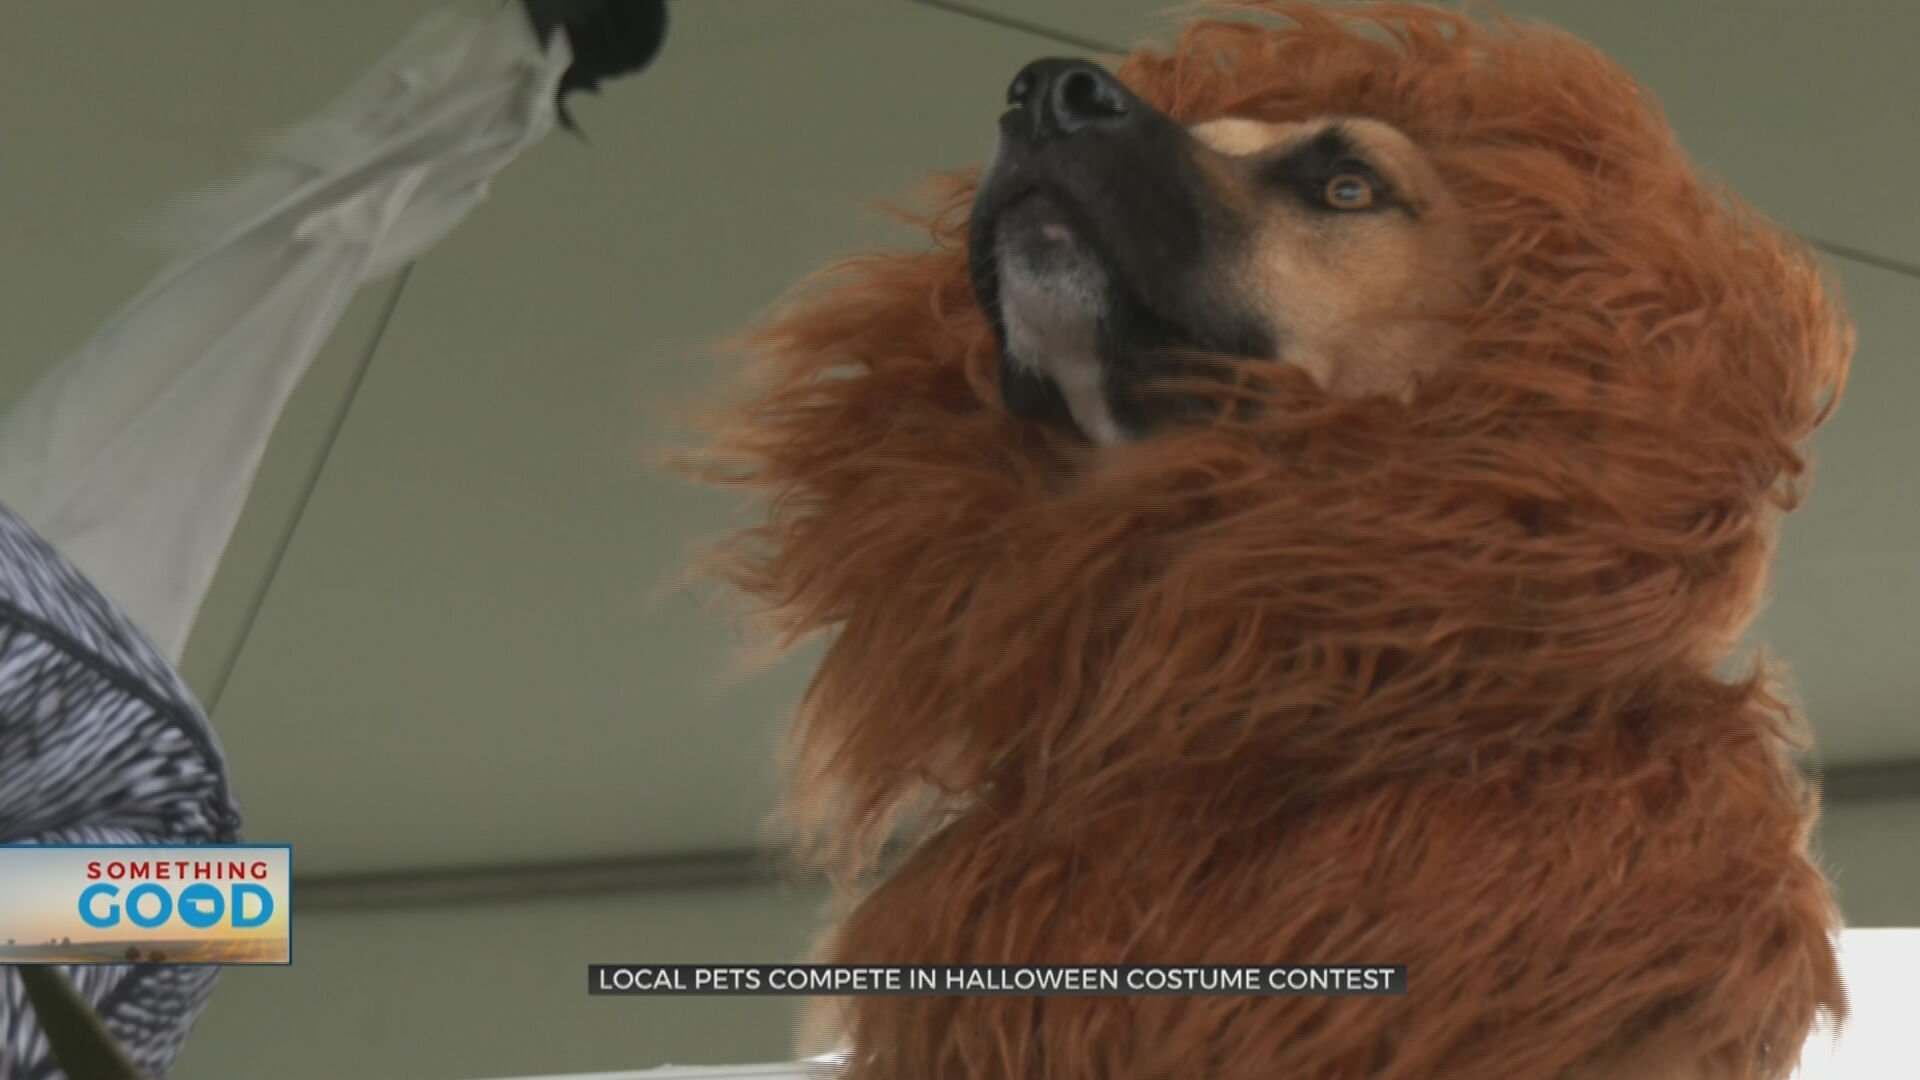 Dogs Show Off Creative Halloween Costumes For Treats, Not Tricks